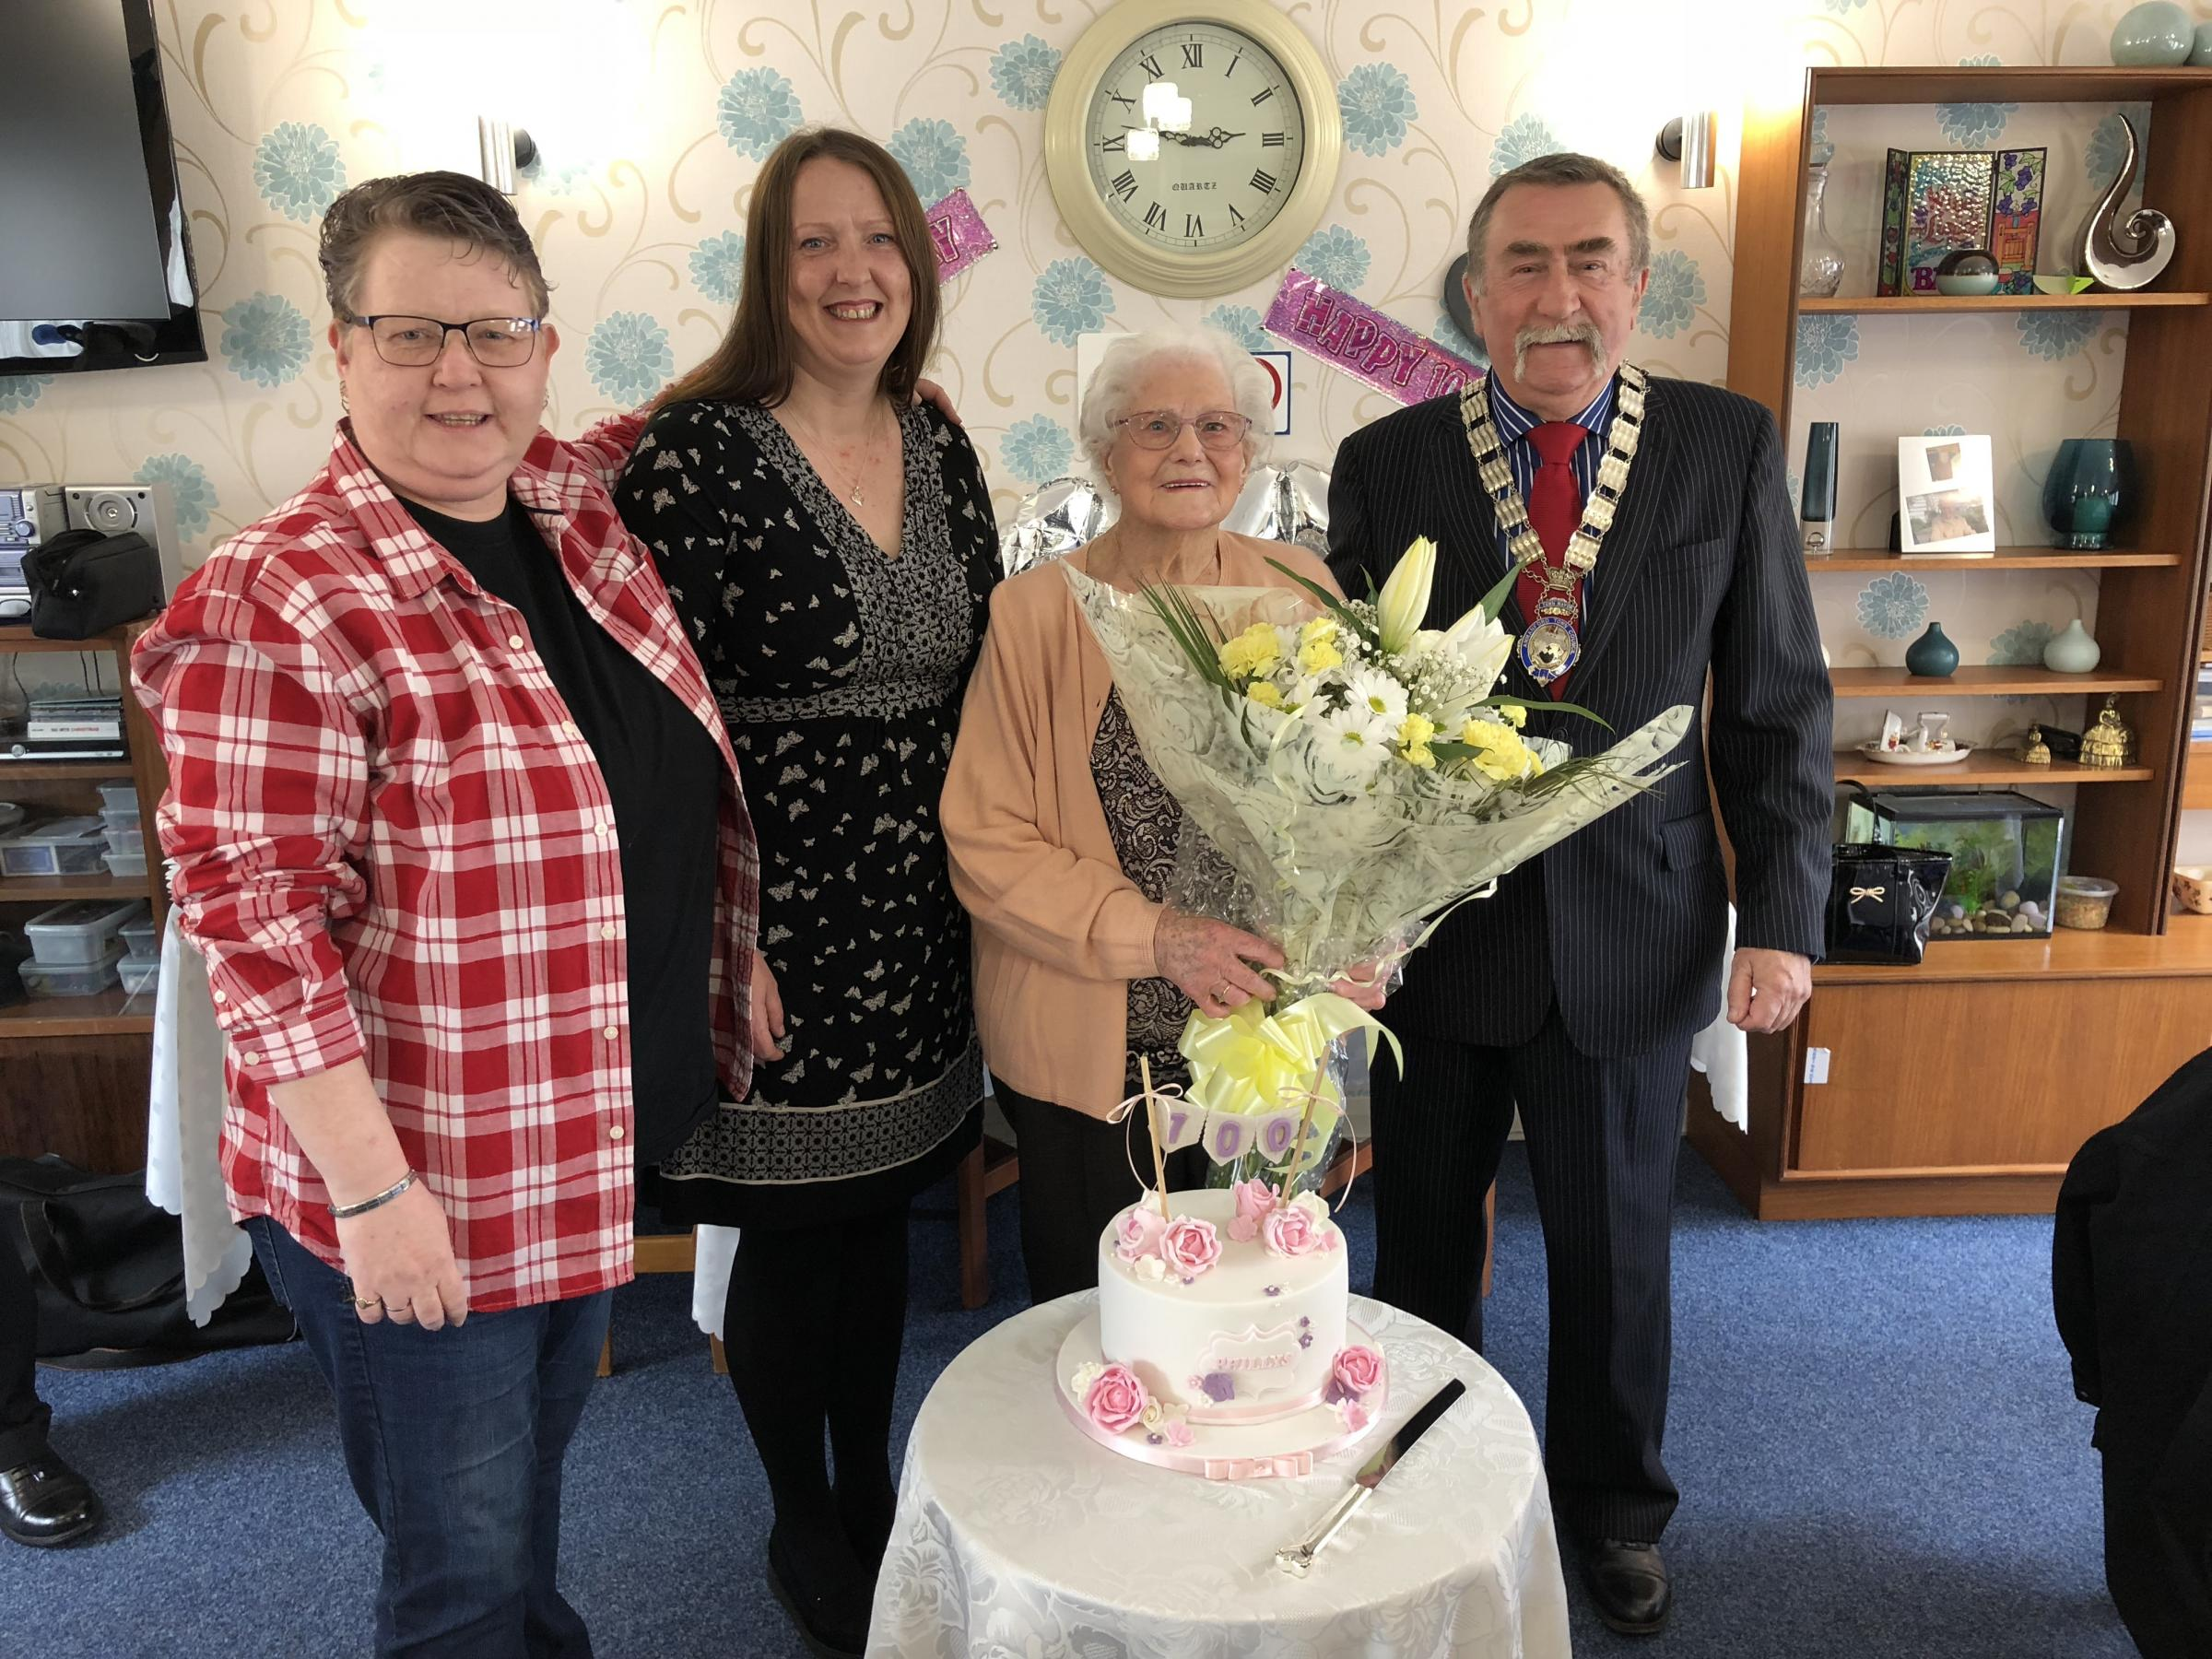 Cllr Pam Harris, Cllr Wendi Mills-Lowe and Mayor Colin Evans present 100-year-old Phylis Hobbs with a bunch of flowers.